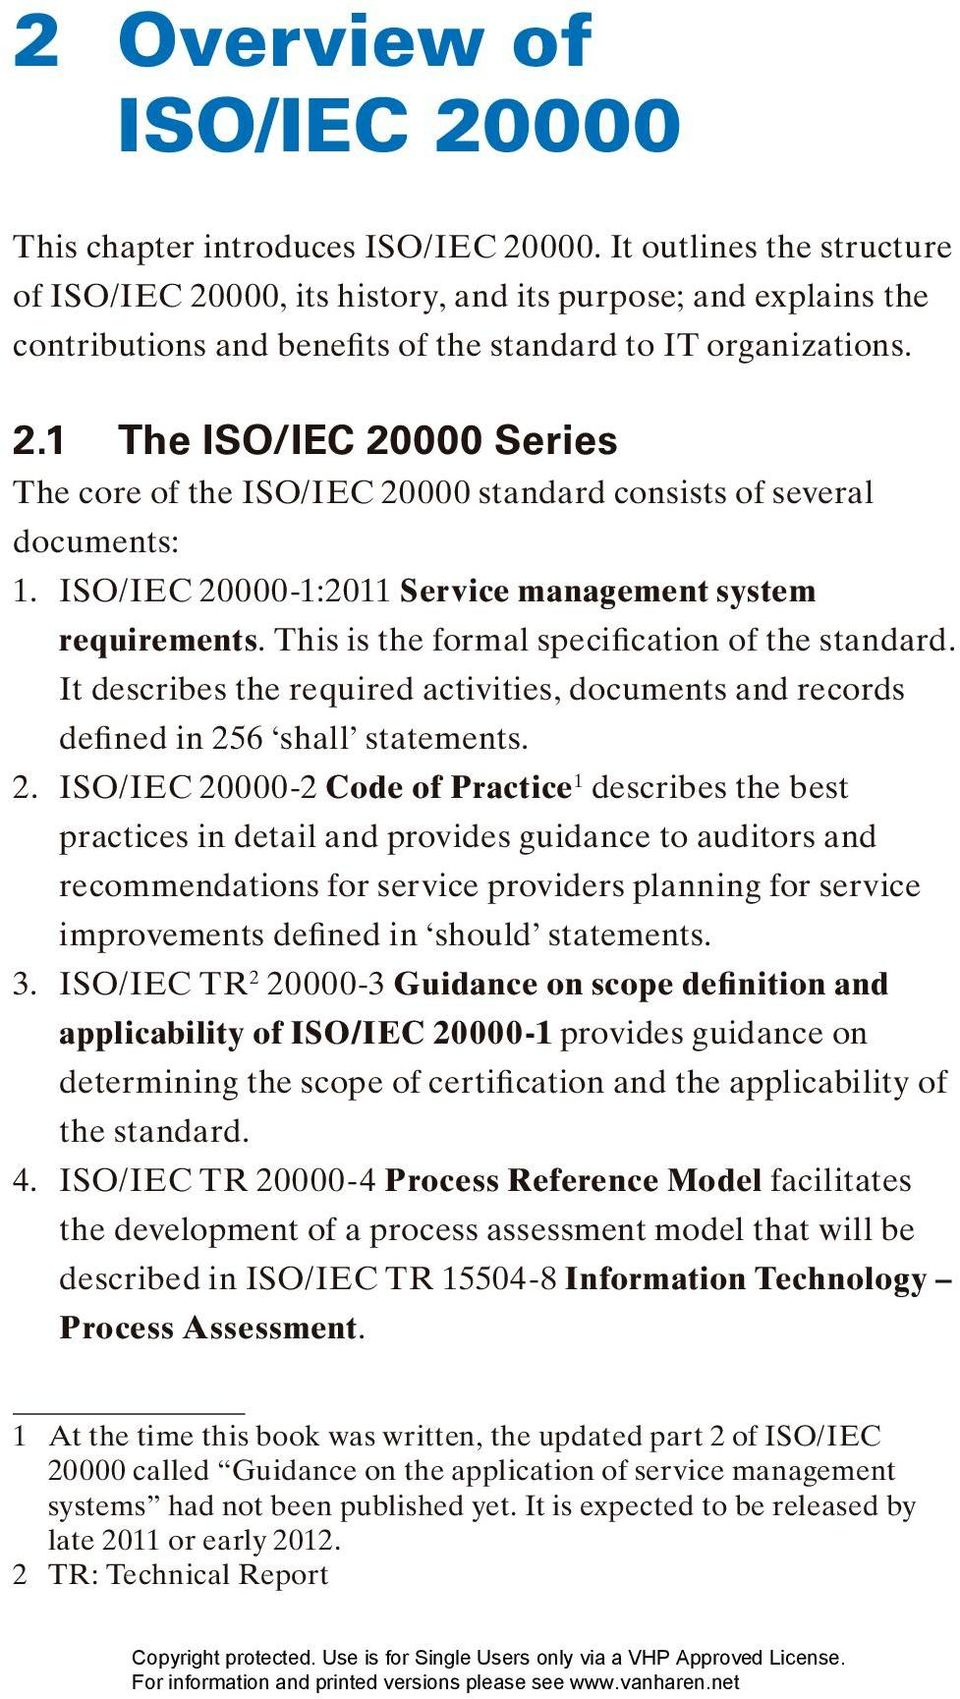 ISO/IEC 20000-1:2011 Service management system requirements. This is the formal specification of the standard.